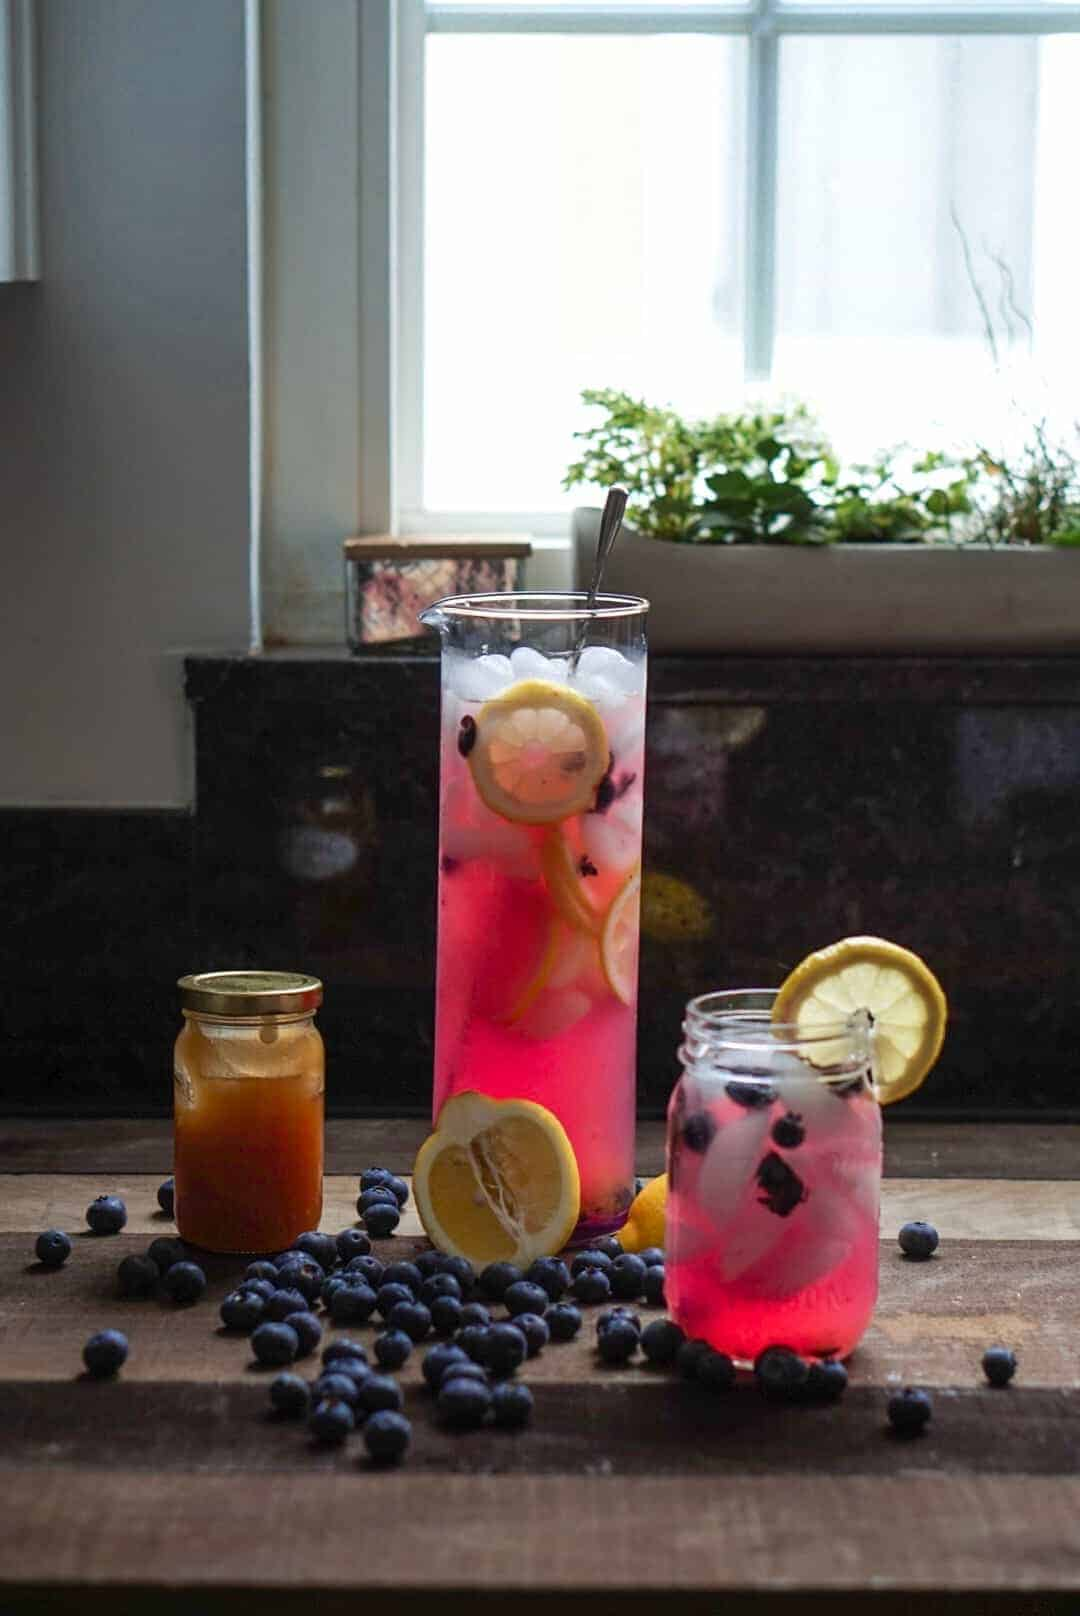 Pitcher and 2 glasses of fresh-squeezed blueberry lemonade